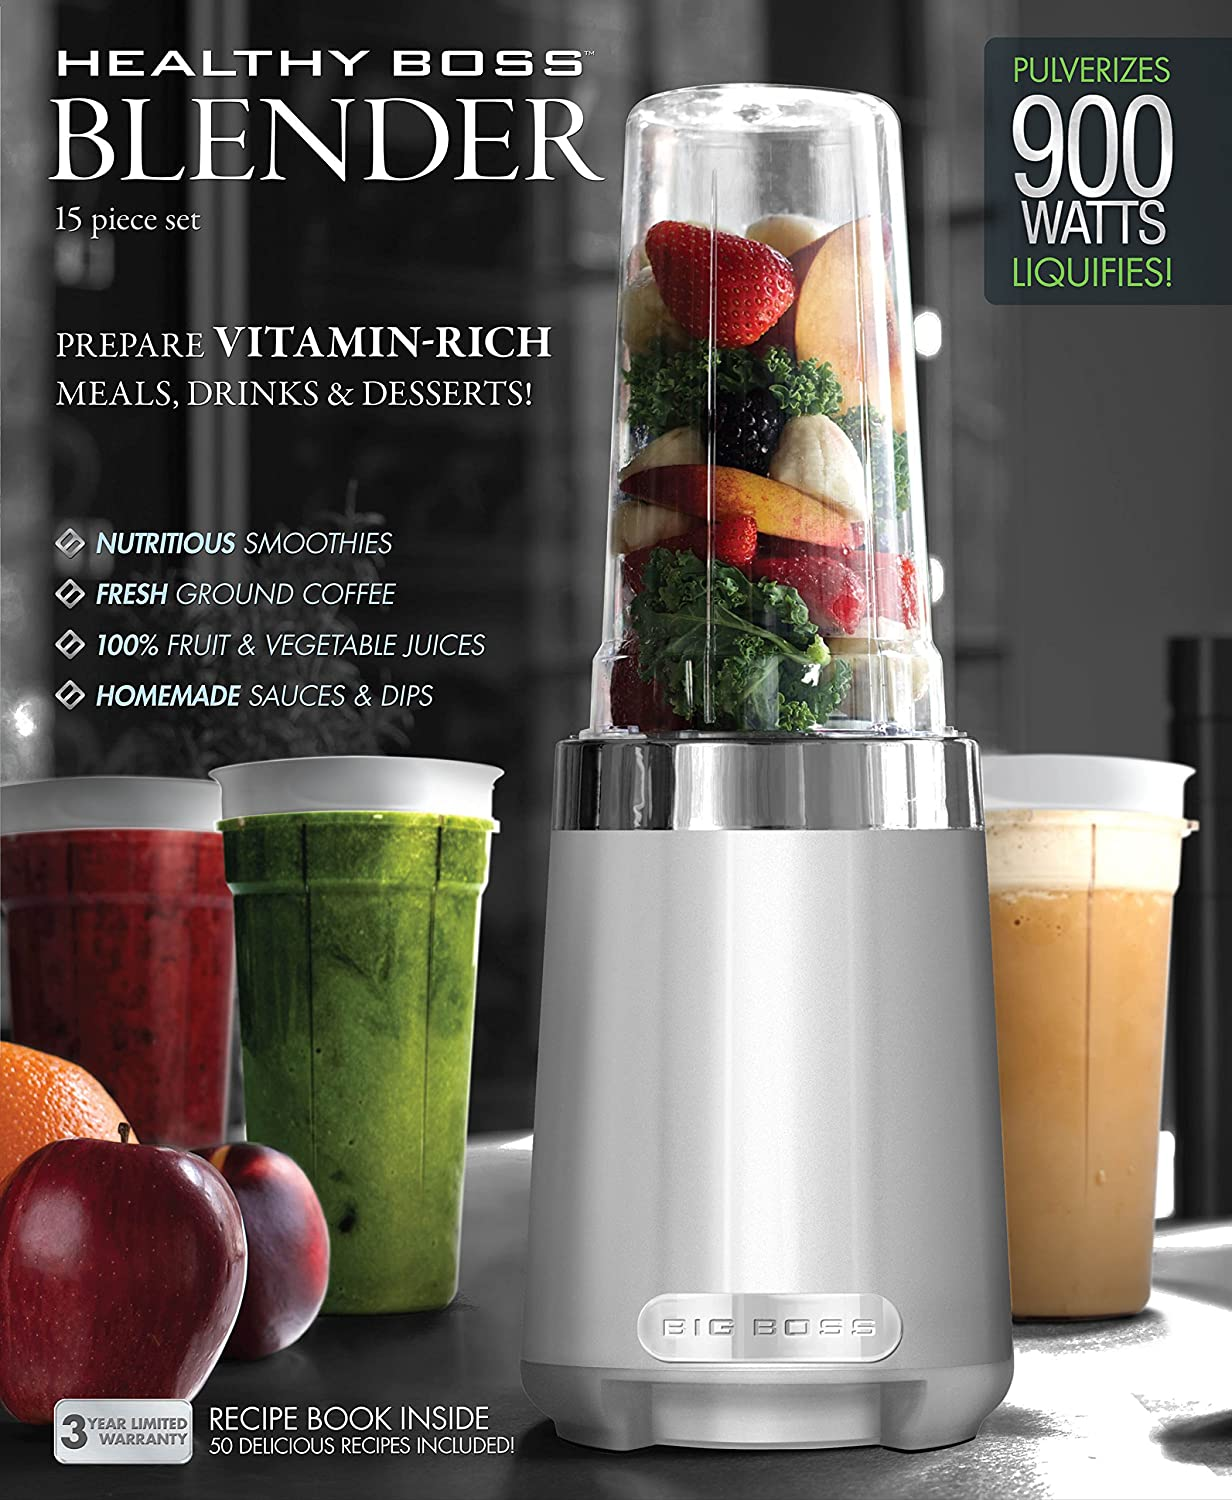 Big Boss 9510 15-Piece Healthy Boss Blender, 900-watt, Silver